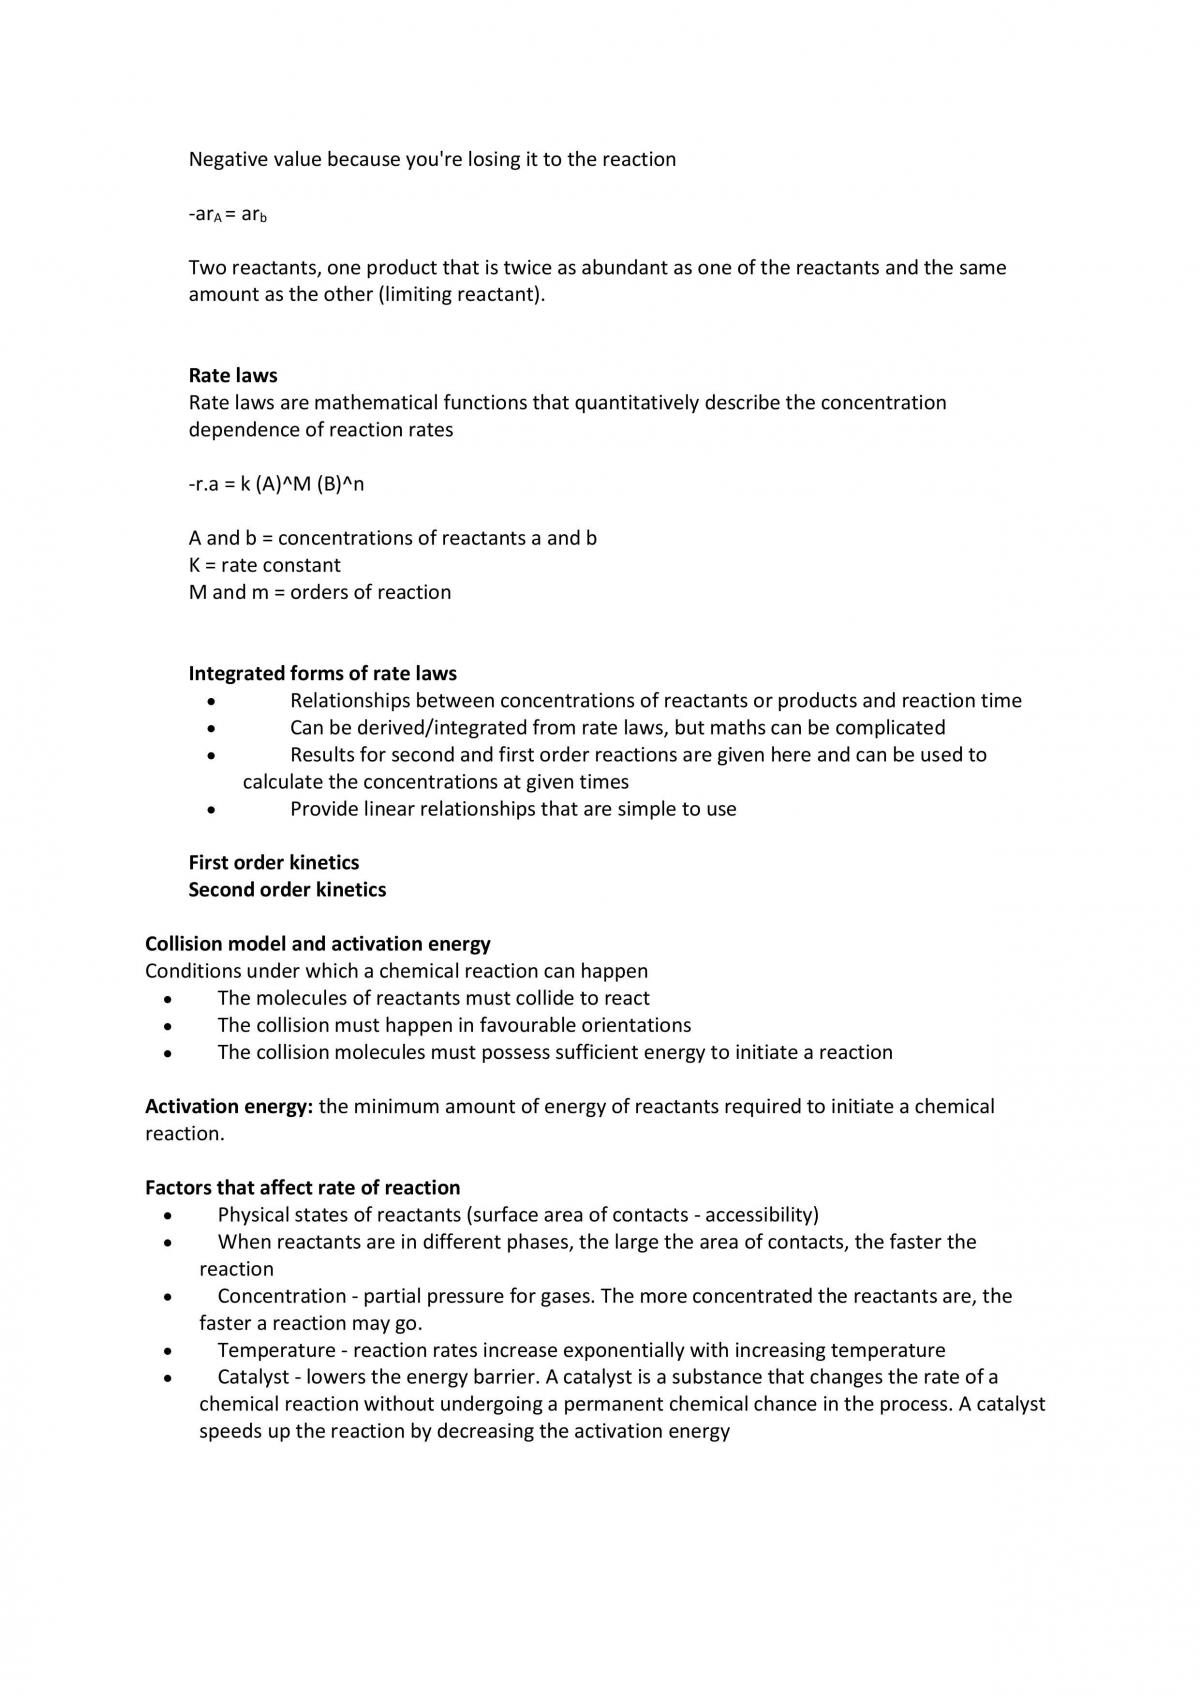 Chemistry 1A Complete notes - Page 39